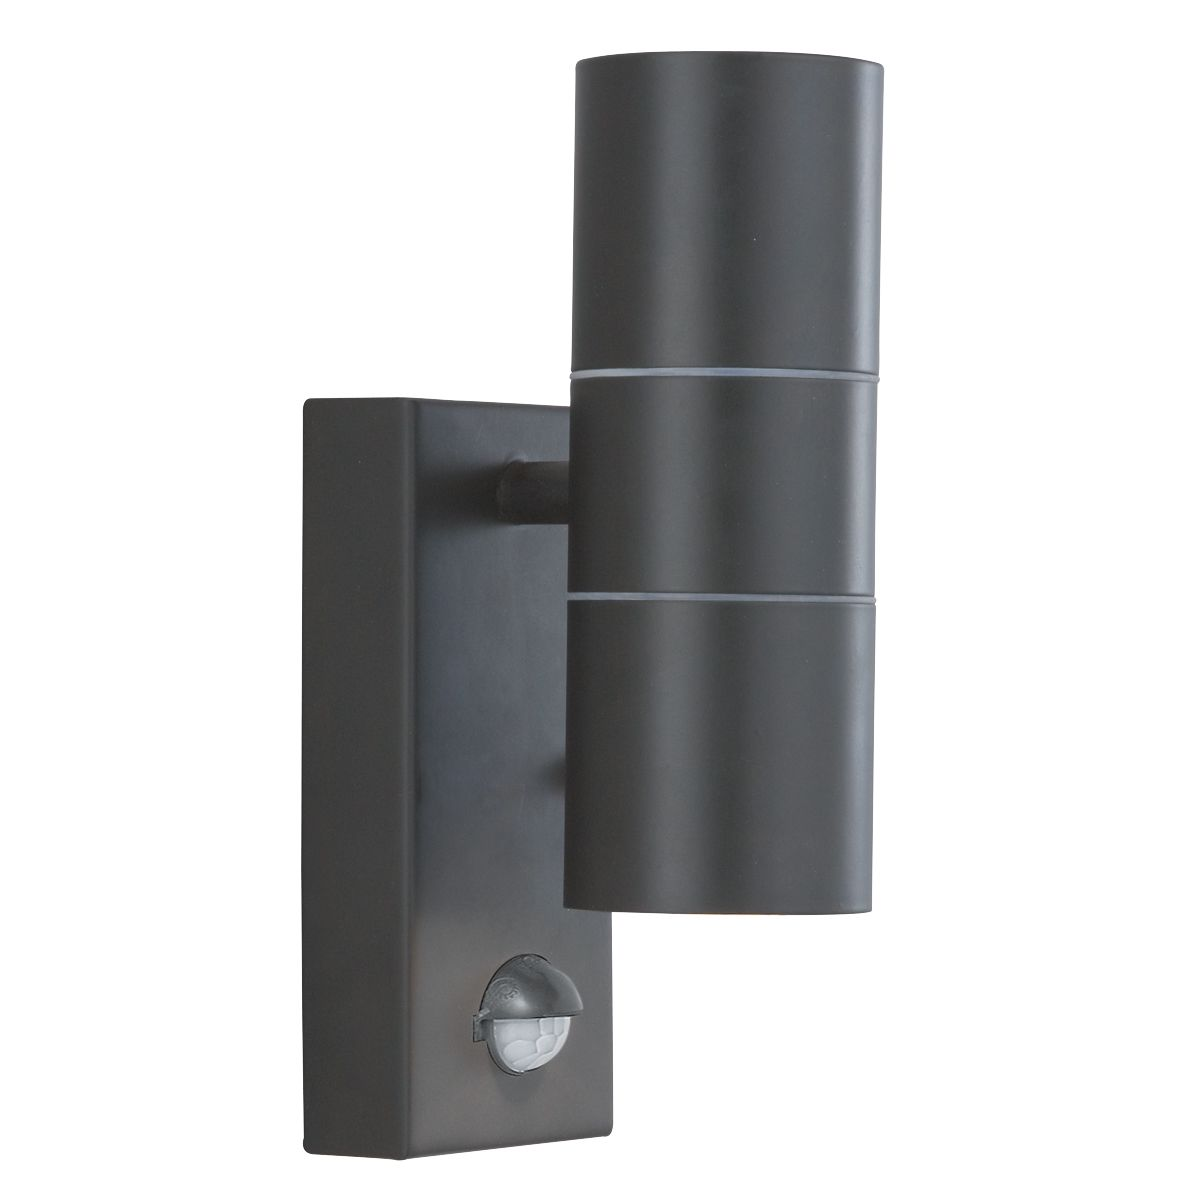 Stainless Steel Black Ip44 2 Light Outdoor Light With Motion Sensor